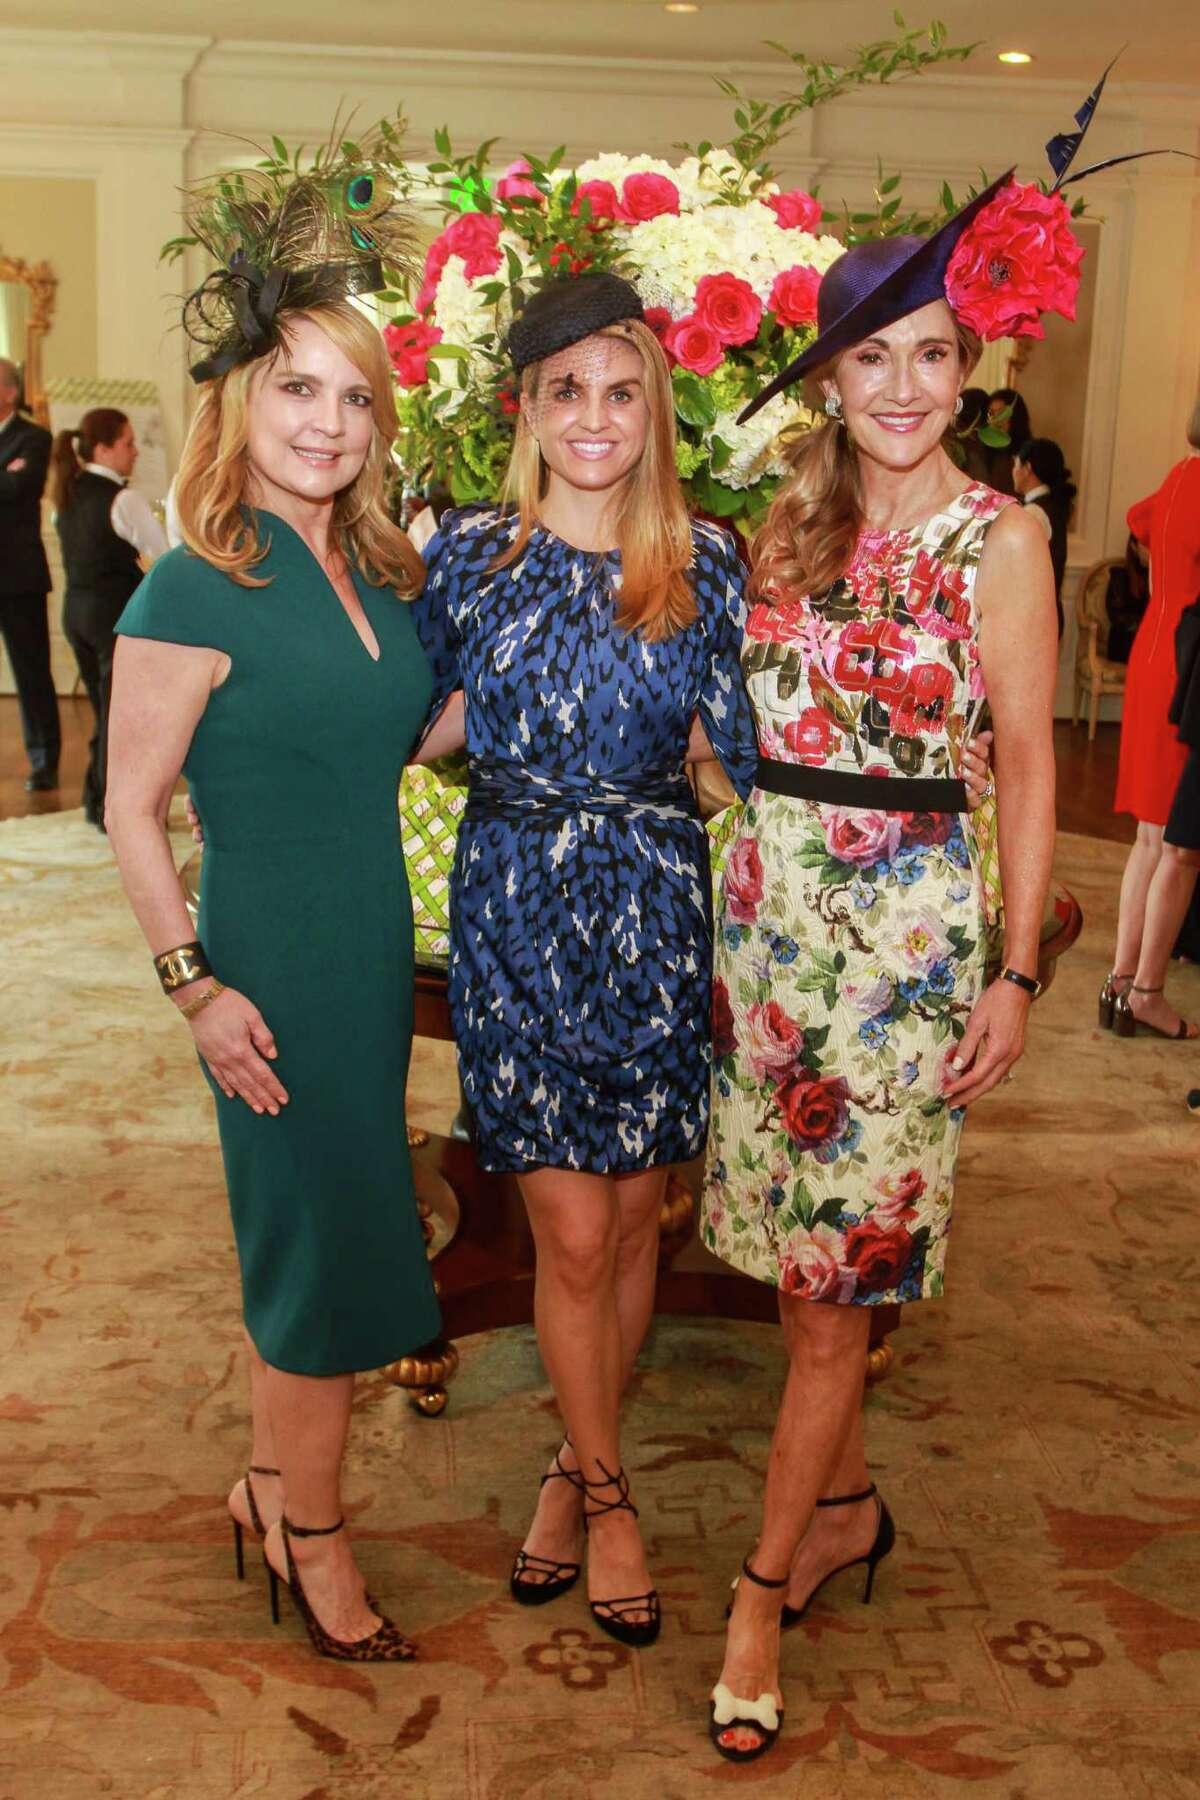 Chairs Melissa Juneau, from left, Lindley Arnoldy and Jana Arnoldy at the Hats Off to Mother's Luncheon at River Oaks Country Club.